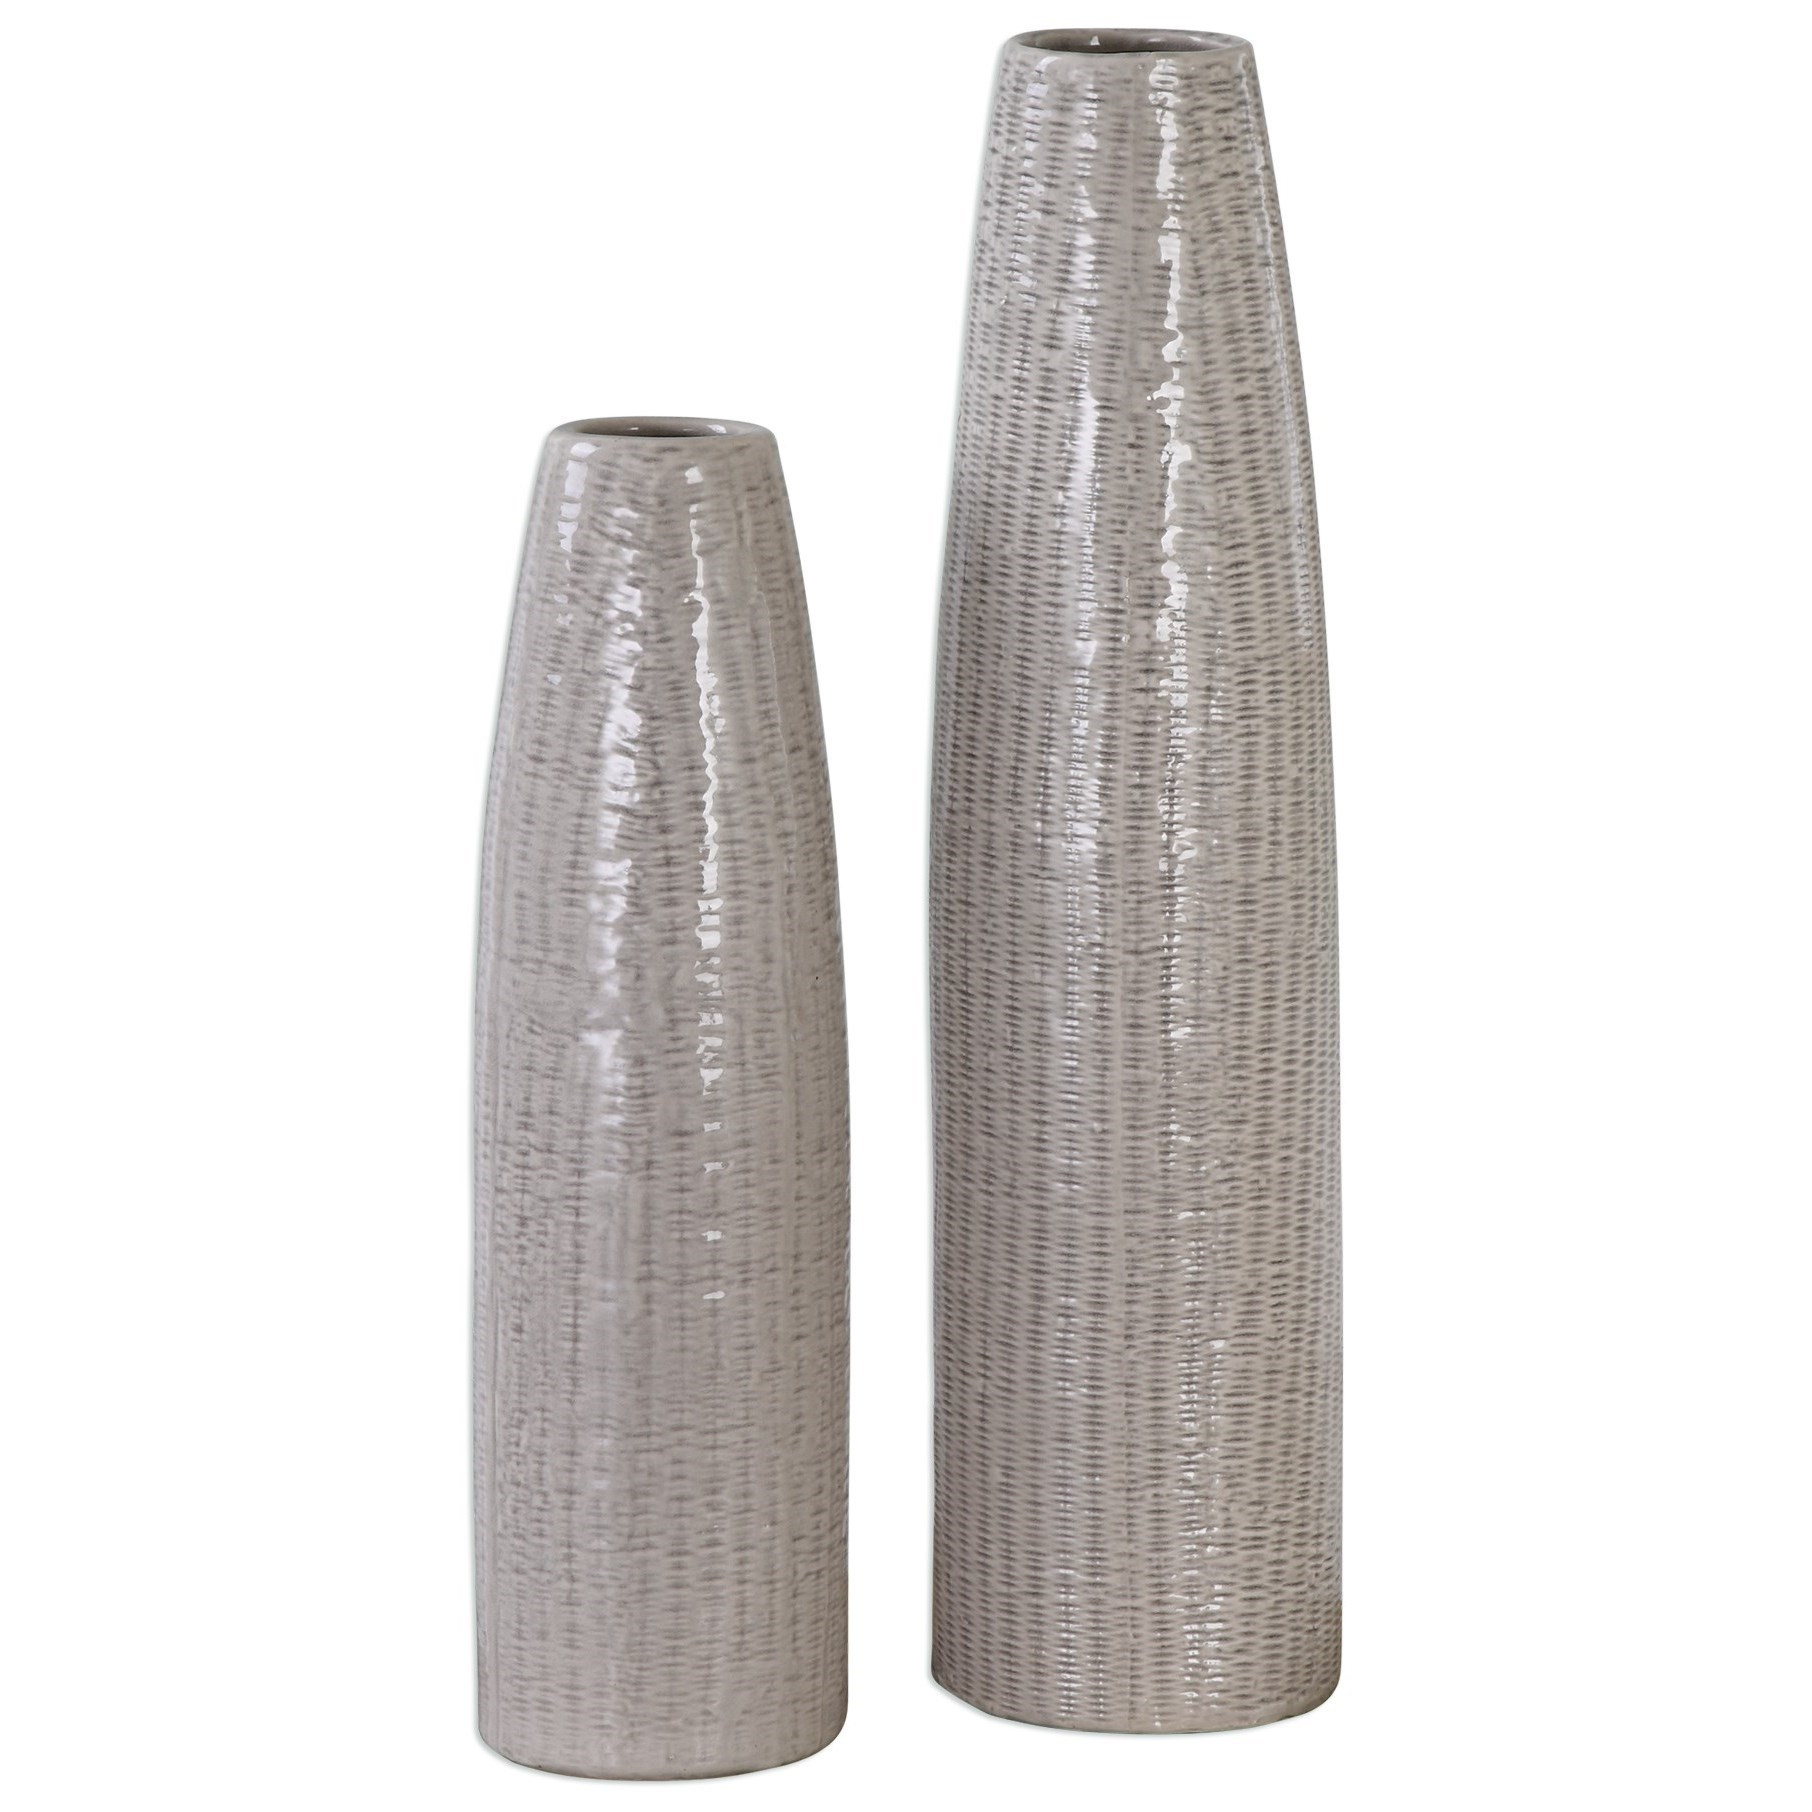 Accessories - Vases and Urns Sara Vases (Set of 2) by Uttermost at Mueller Furniture